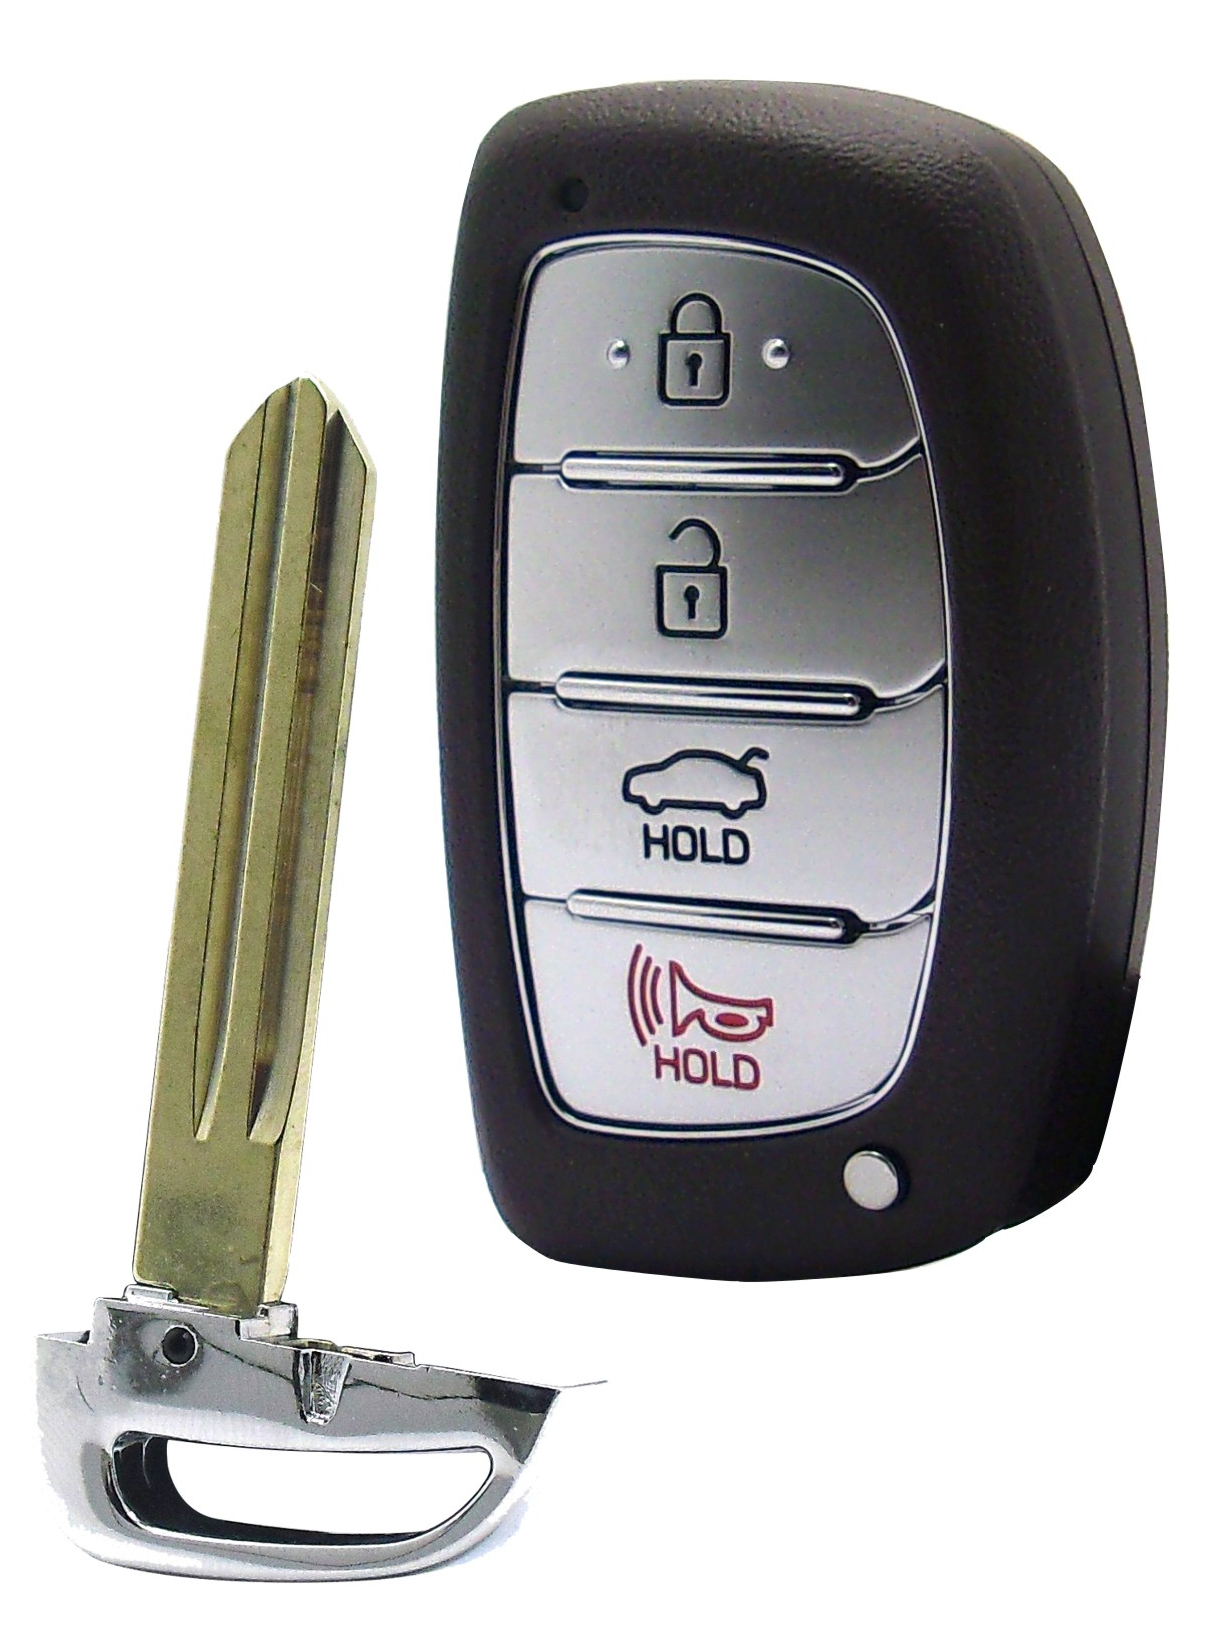 Hyundai Smart Key - 4 Buttons with Trunk